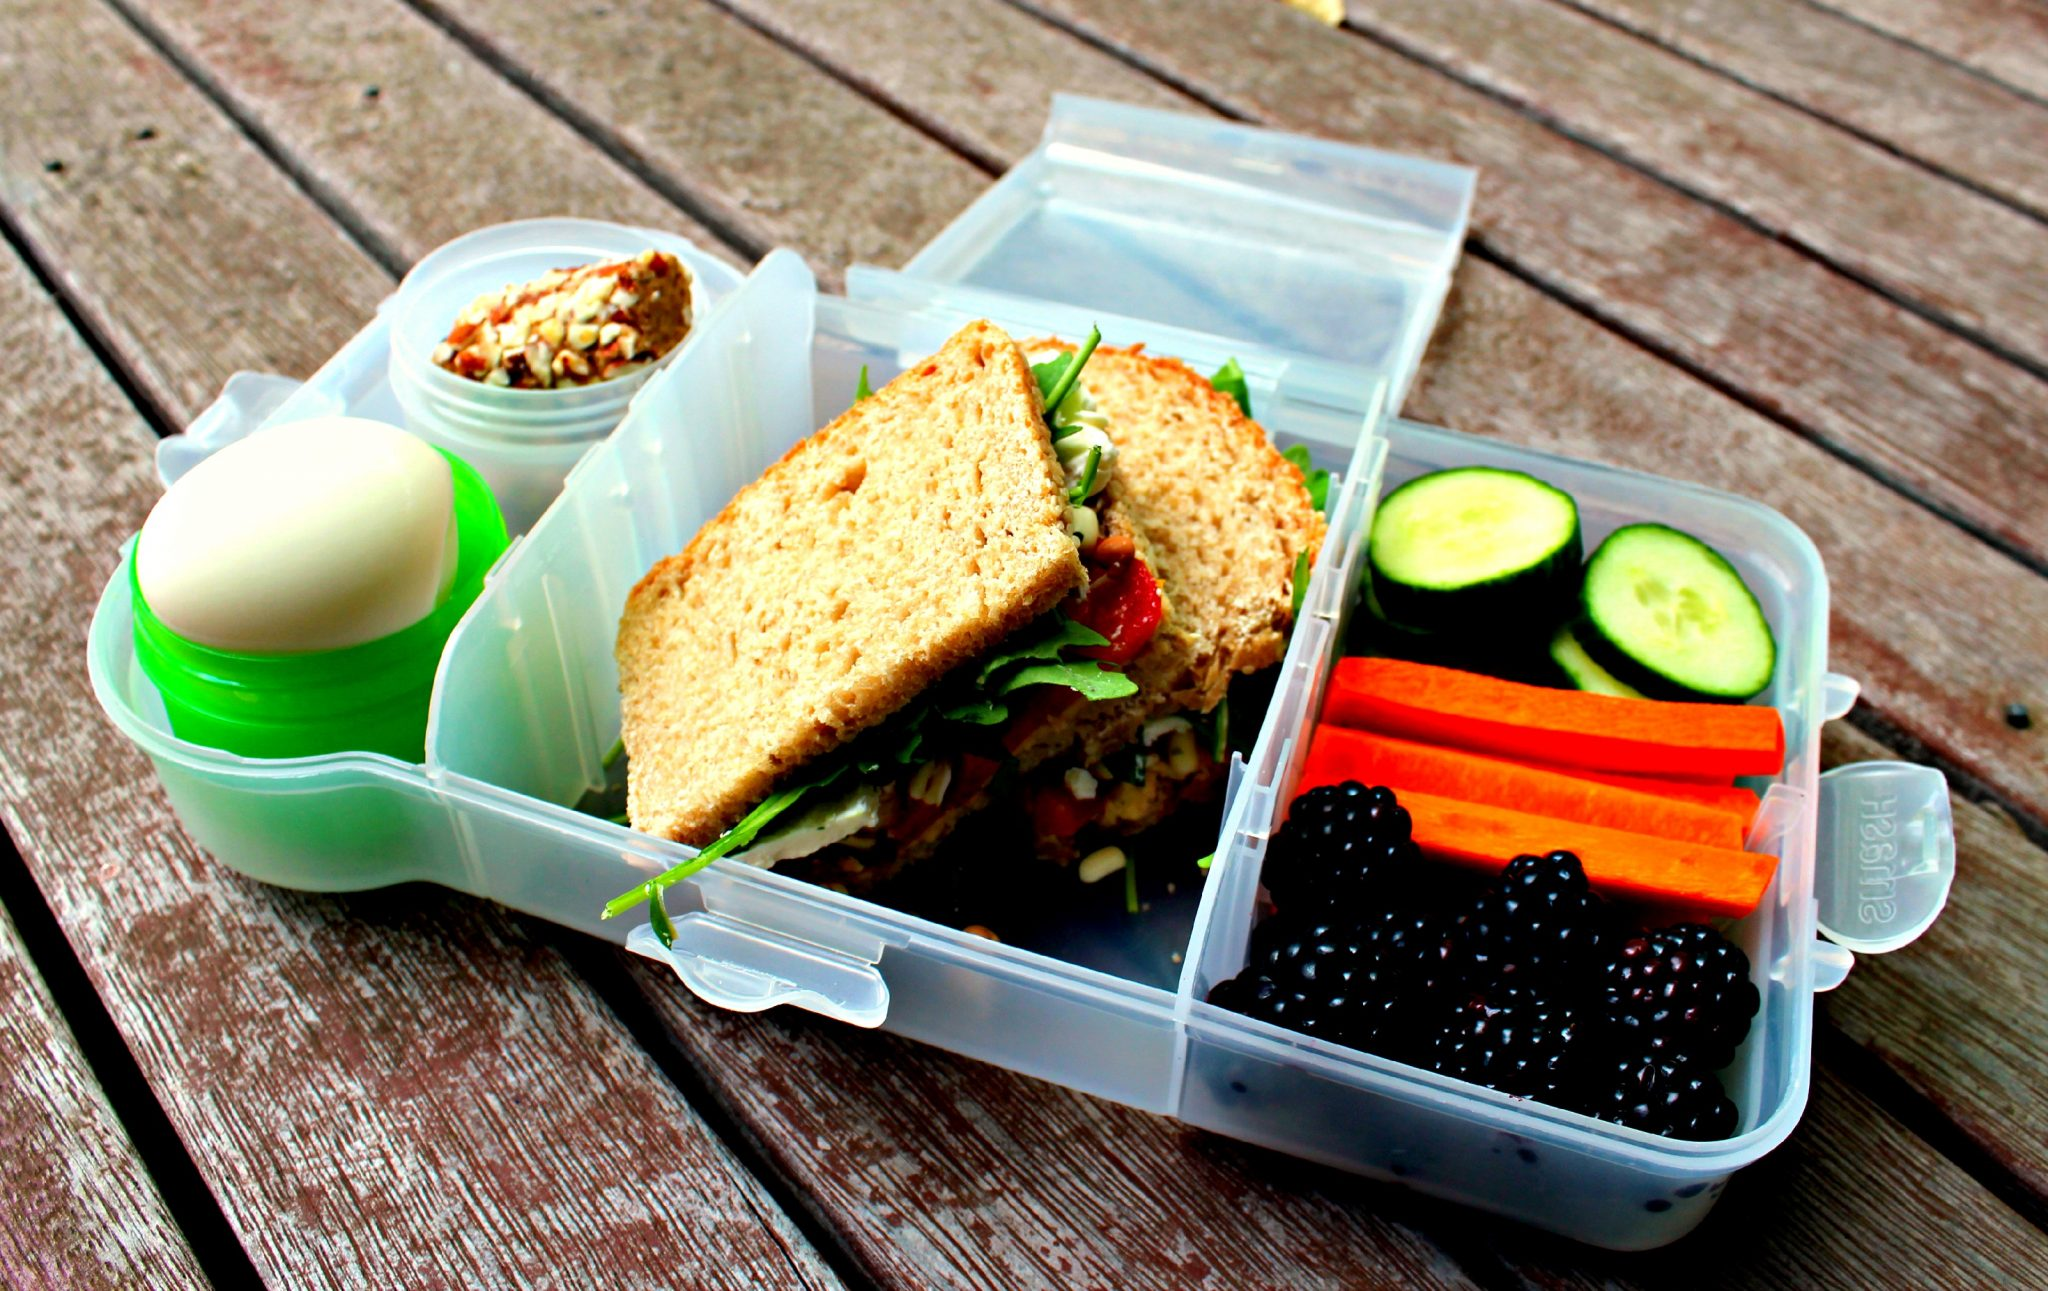 4 easy steps to a healthy lunchbox